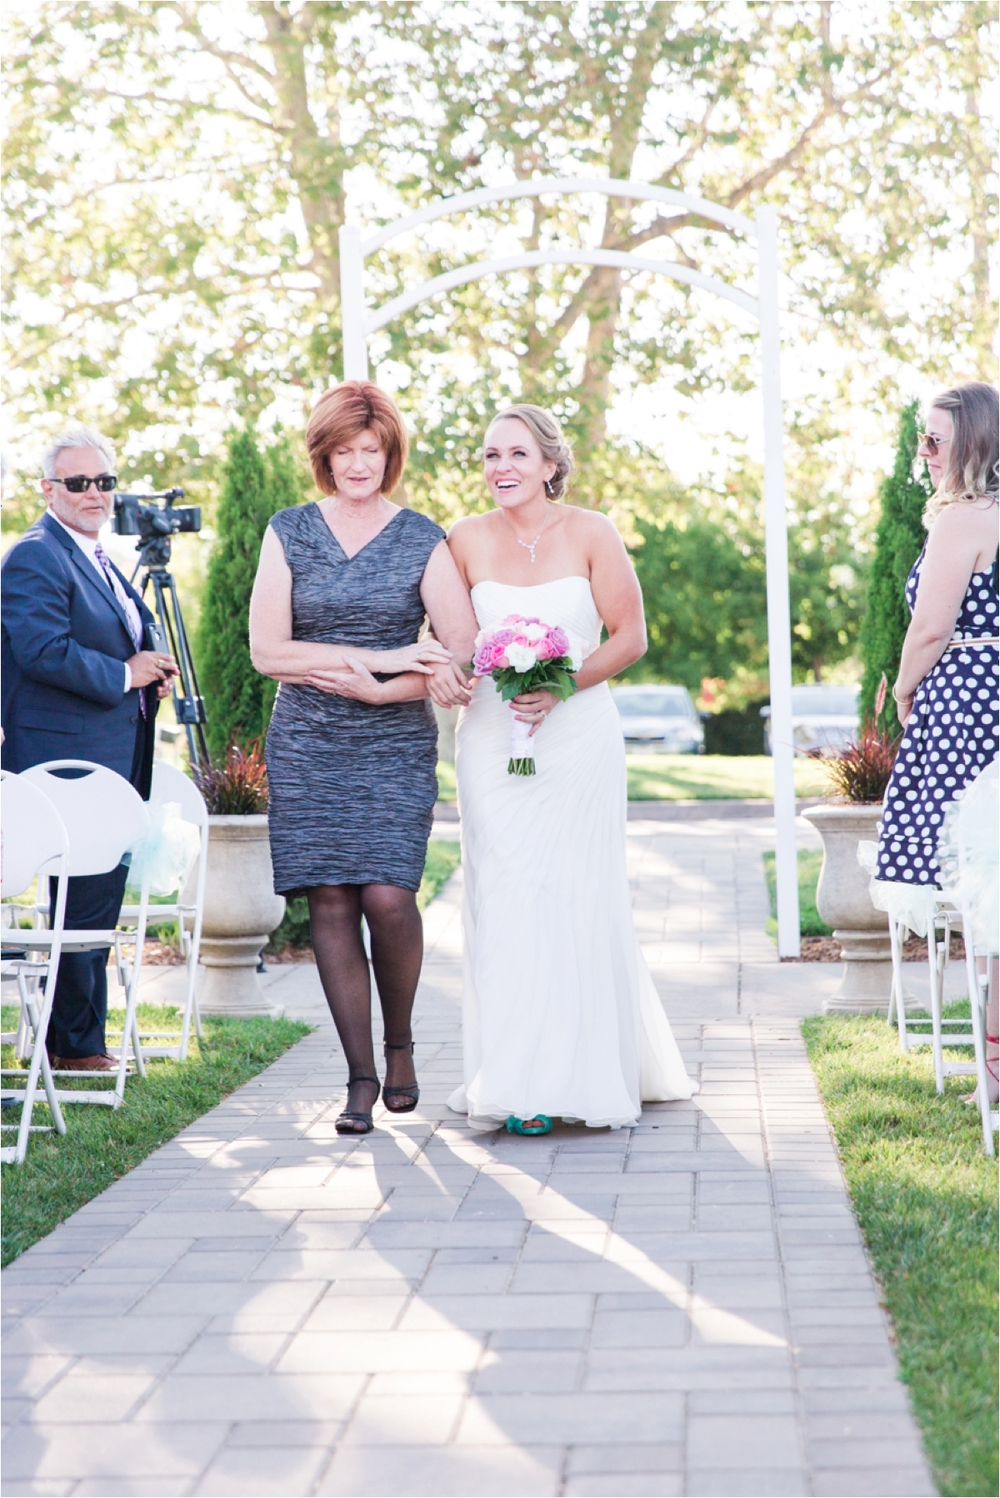 Eagle Ridge Golf Club wedding pictures by Briana Calderon Photography_0432.jpg